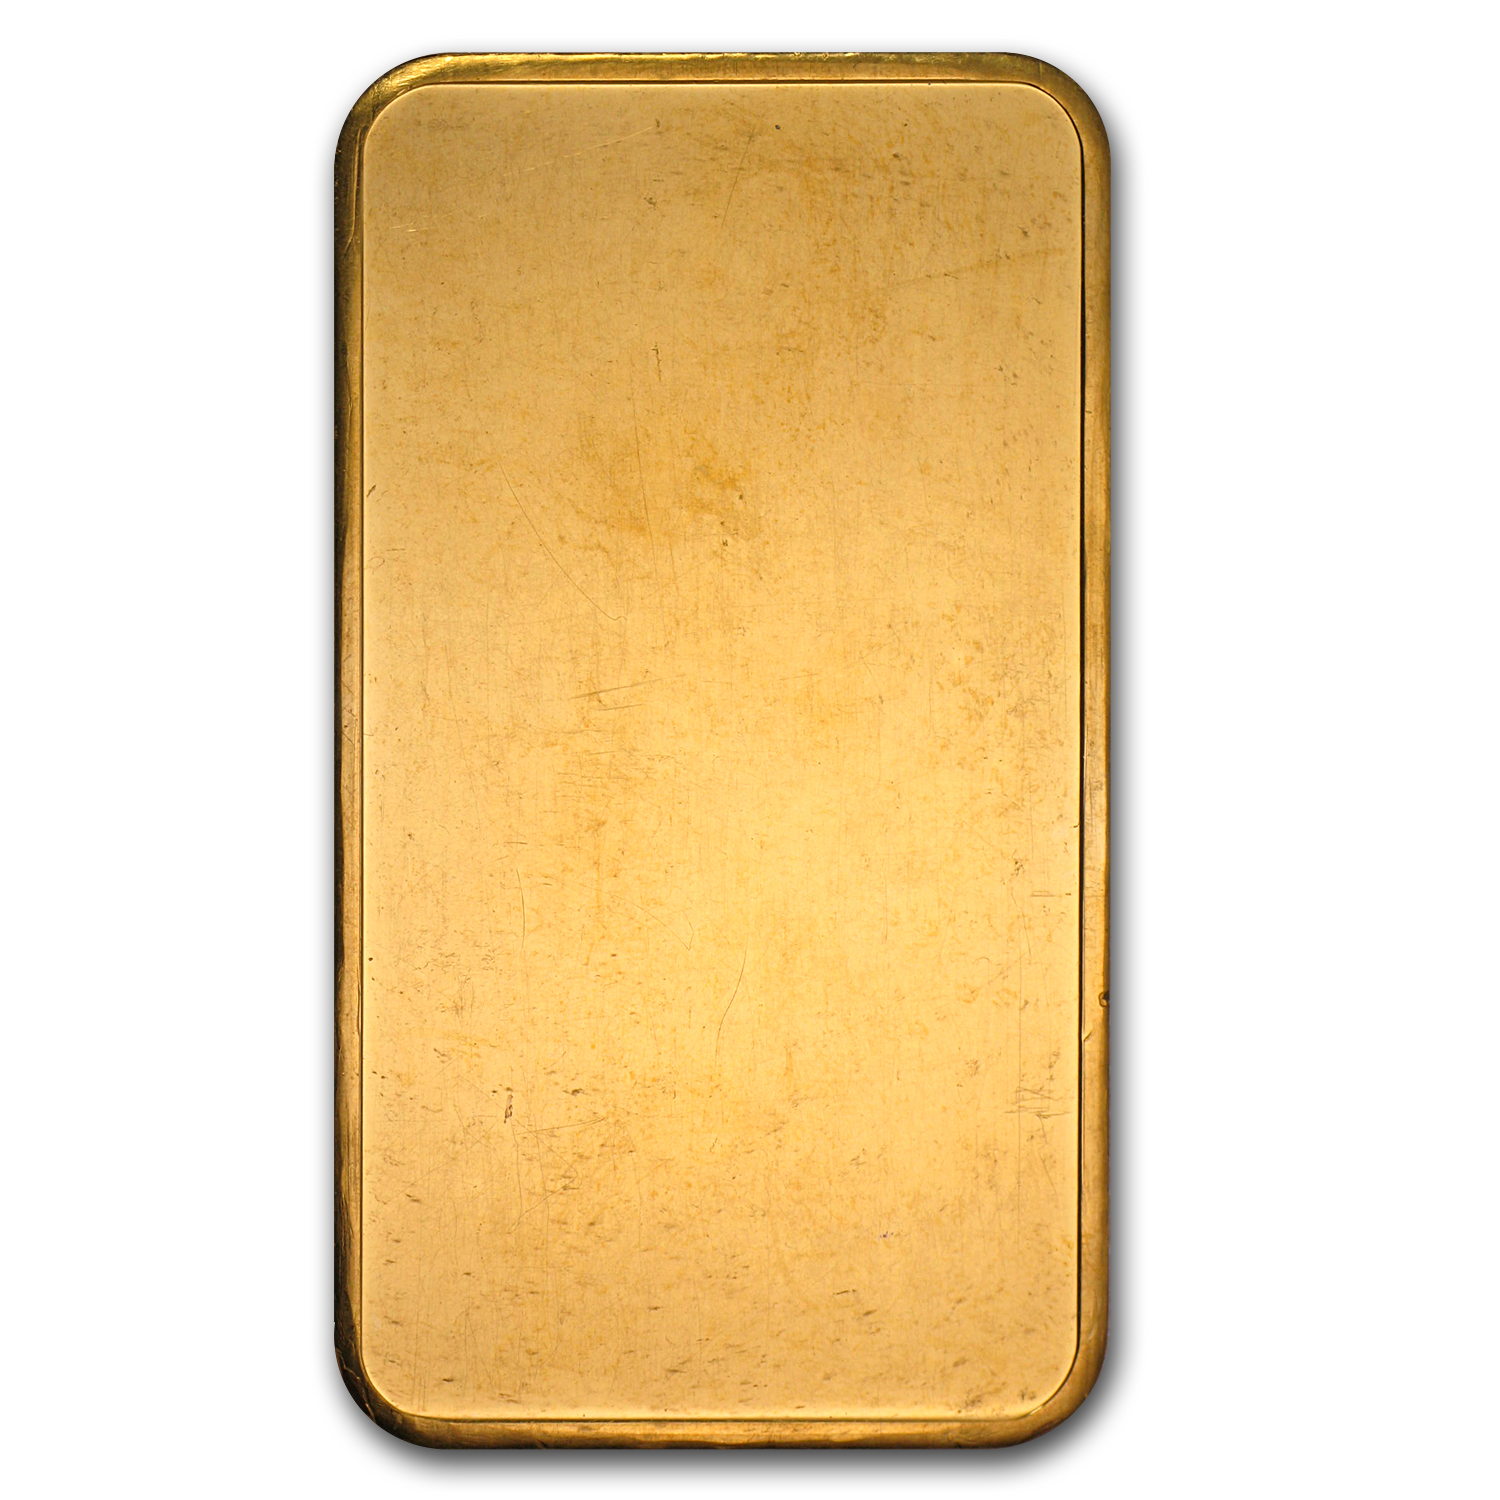 5 oz Gold Bar - Johnson Matthey (Plain Back)